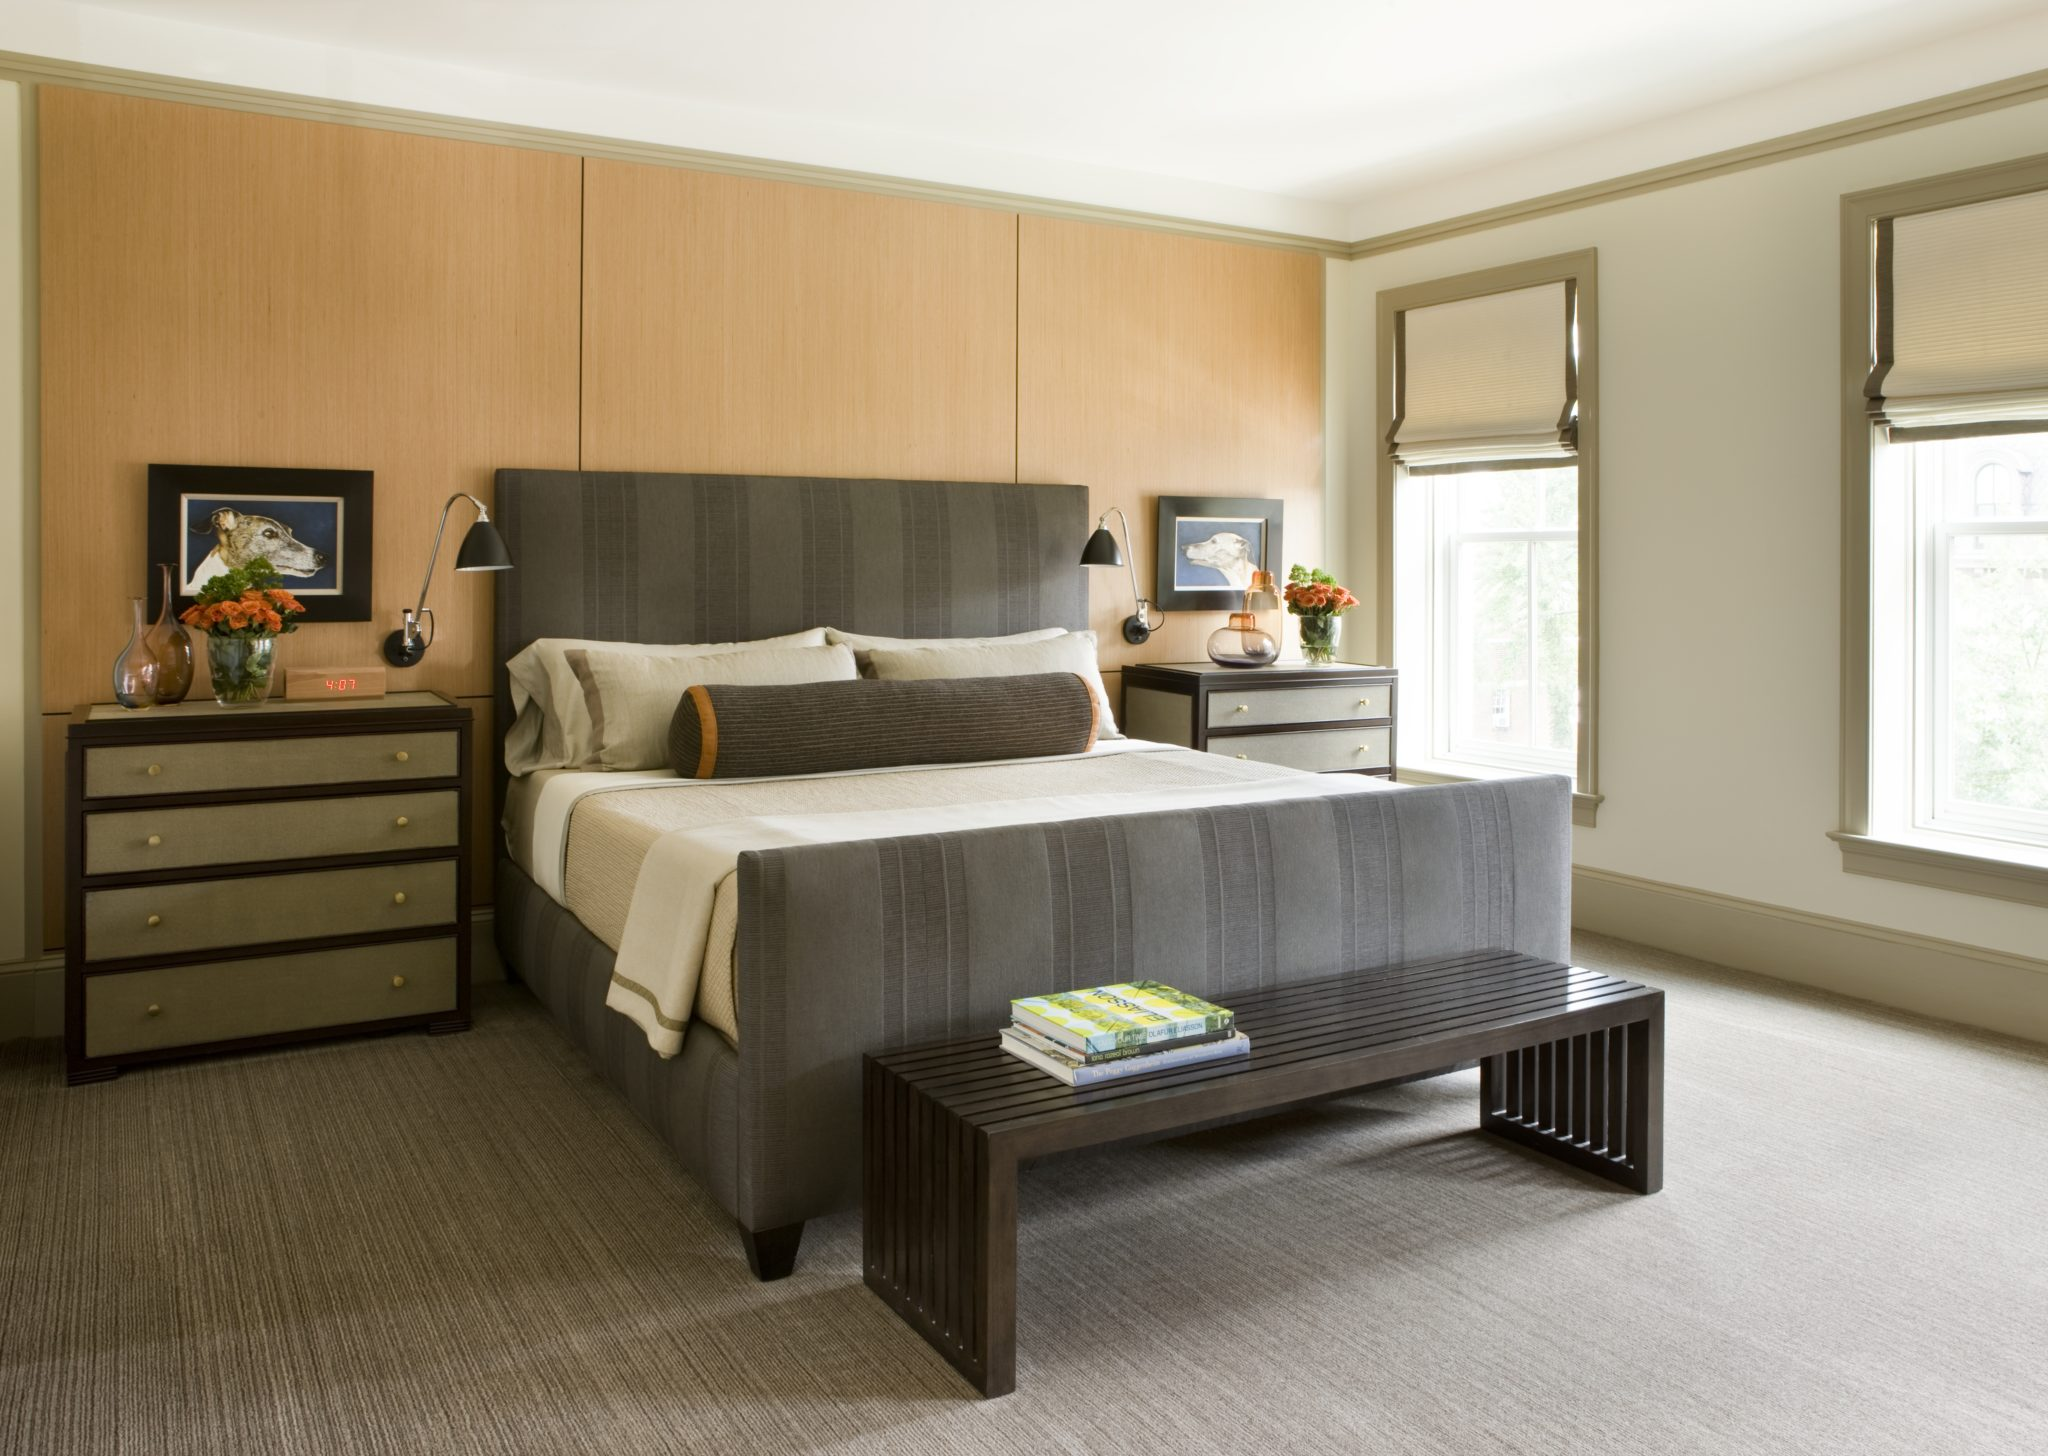 Master Bedroom in a Logan Circle rowhouse by J.D. Ireland Interior Architecture & Design